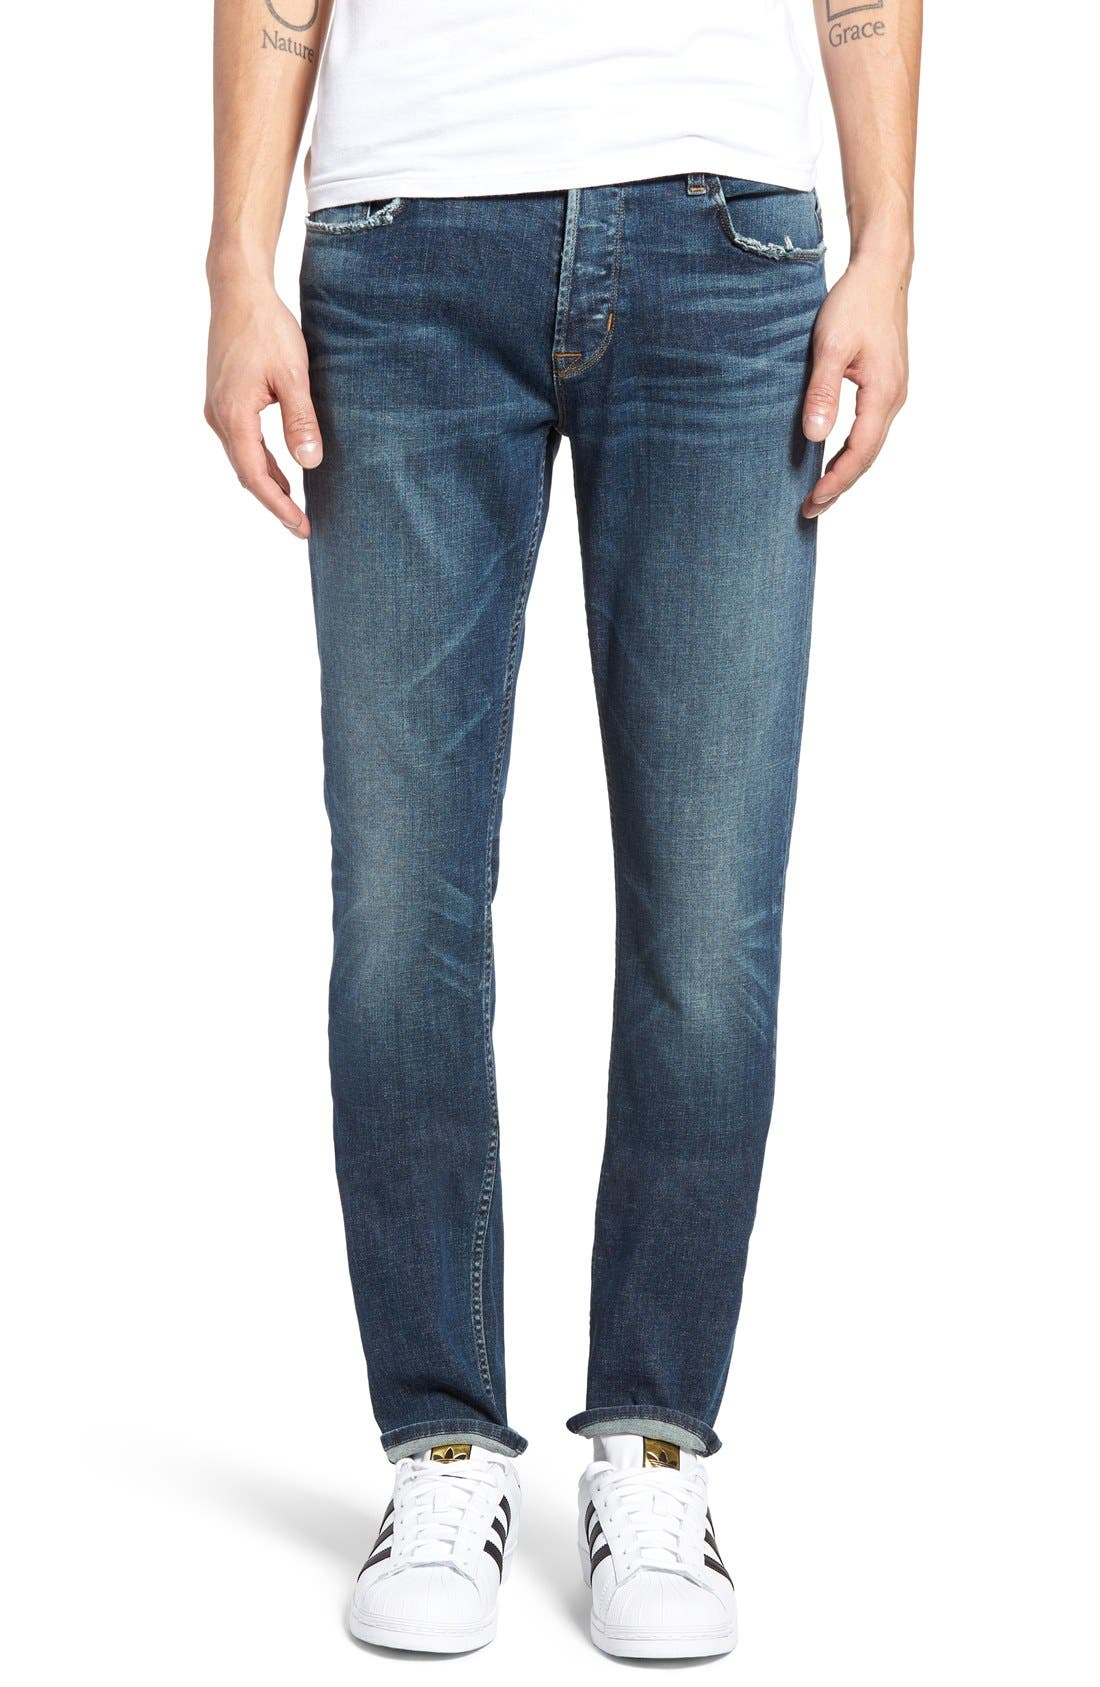 Sartor Slouchy Skinny Fit Jeans,                         Main,                         color, Deserter